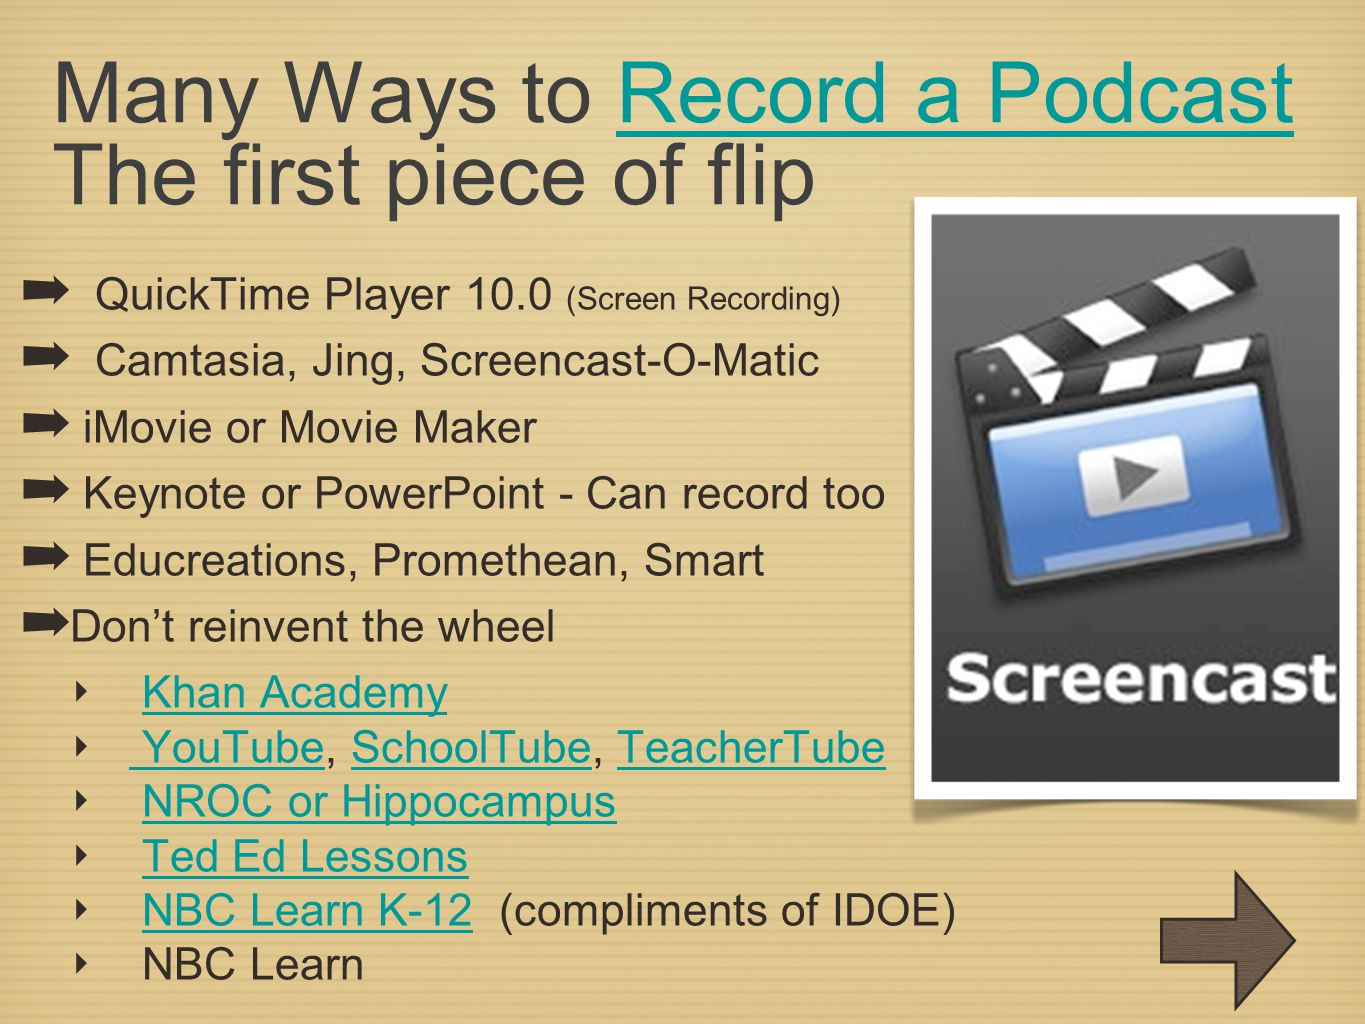 Many Ways to Record a Podcast The first piece of flipRecord a Podcast ➡ QuickTime Player 10.0 (Screen Recording) ➡ Camtasia, Jing, Screencast-O-Matic ➡ iMovie or Movie Maker ➡ Keynote or PowerPoint - Can record too ➡ Educreations, Promethean, Smart ➡ Don't reinvent the wheel ‣ Khan AcademyKhan Academy ‣ YouTube, SchoolTube, TeacherTube YouTubeSchoolTubeTeacherTube ‣ NROC or HippocampusNROC or Hippocampus ‣ Ted Ed LessonsTed Ed Lessons ‣ NBC Learn K-12 (compliments of IDOE)NBC Learn K-12 ‣ NBC Learn